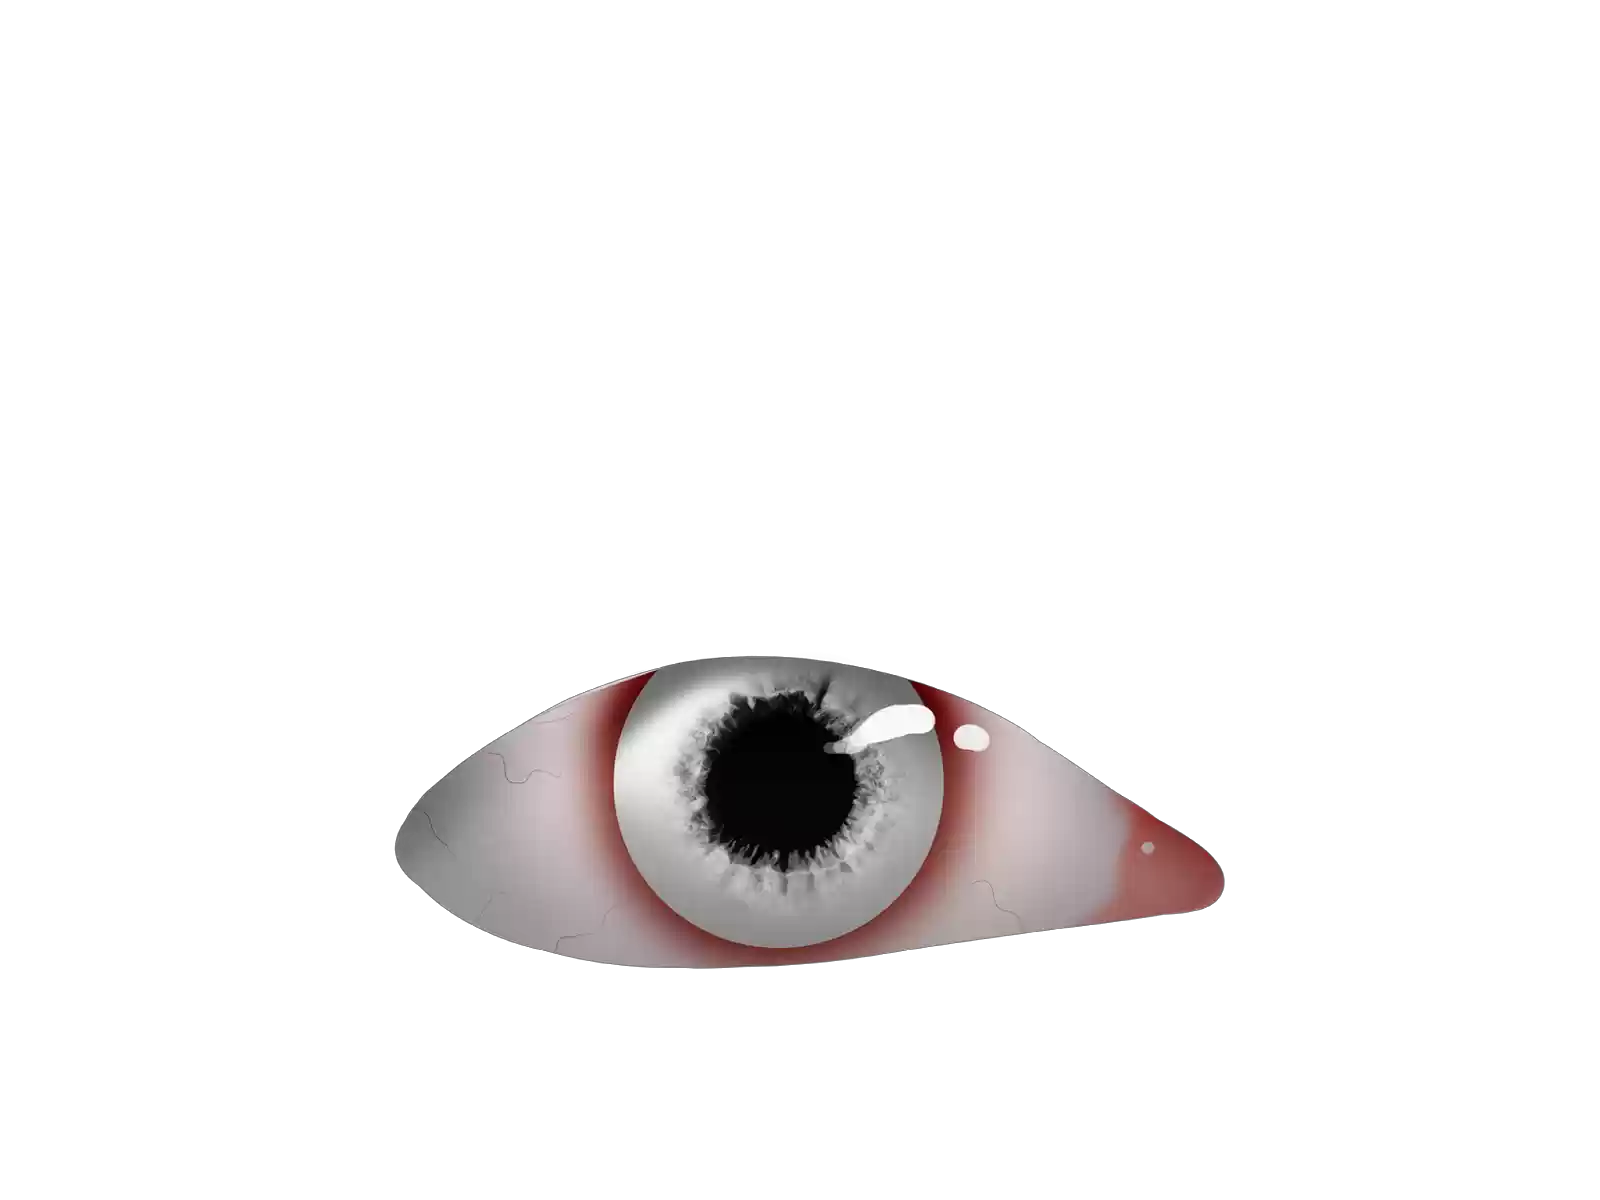 Scary eyes png. Mouth image related wallpapers